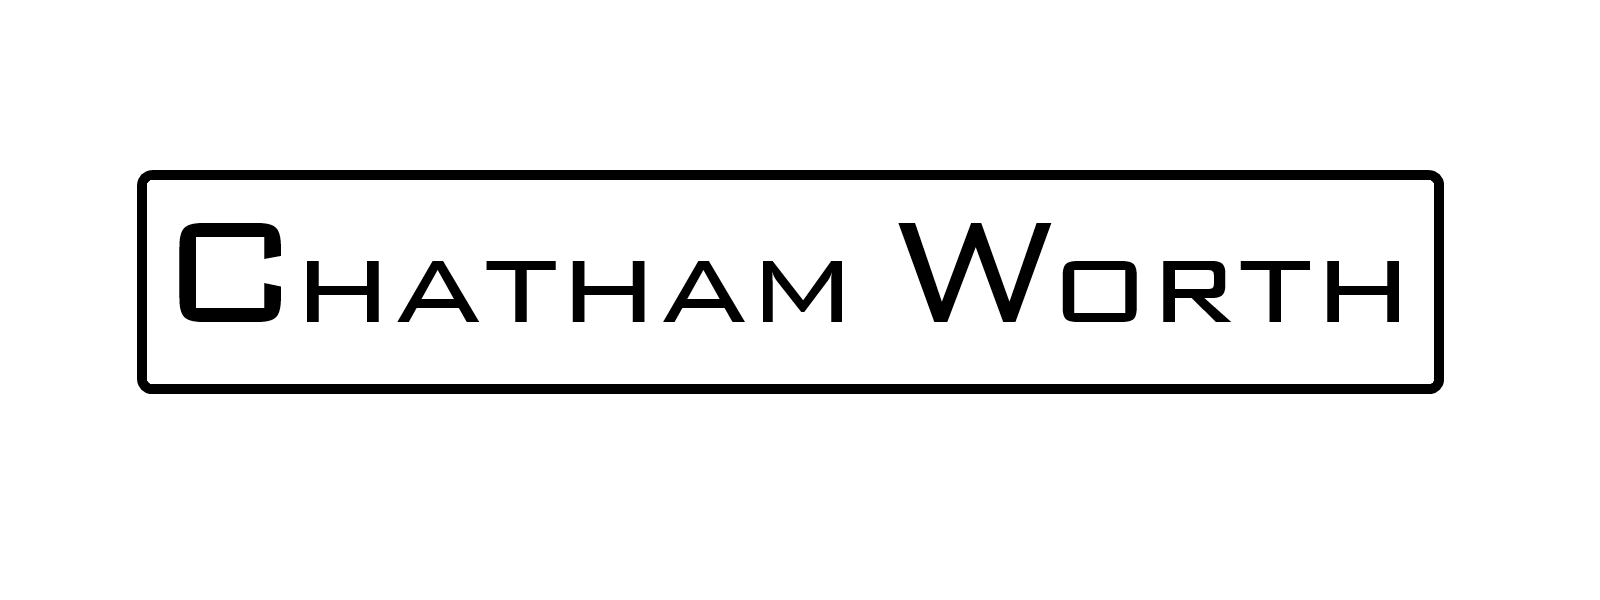 Bark + Build: Chatham Worth logo